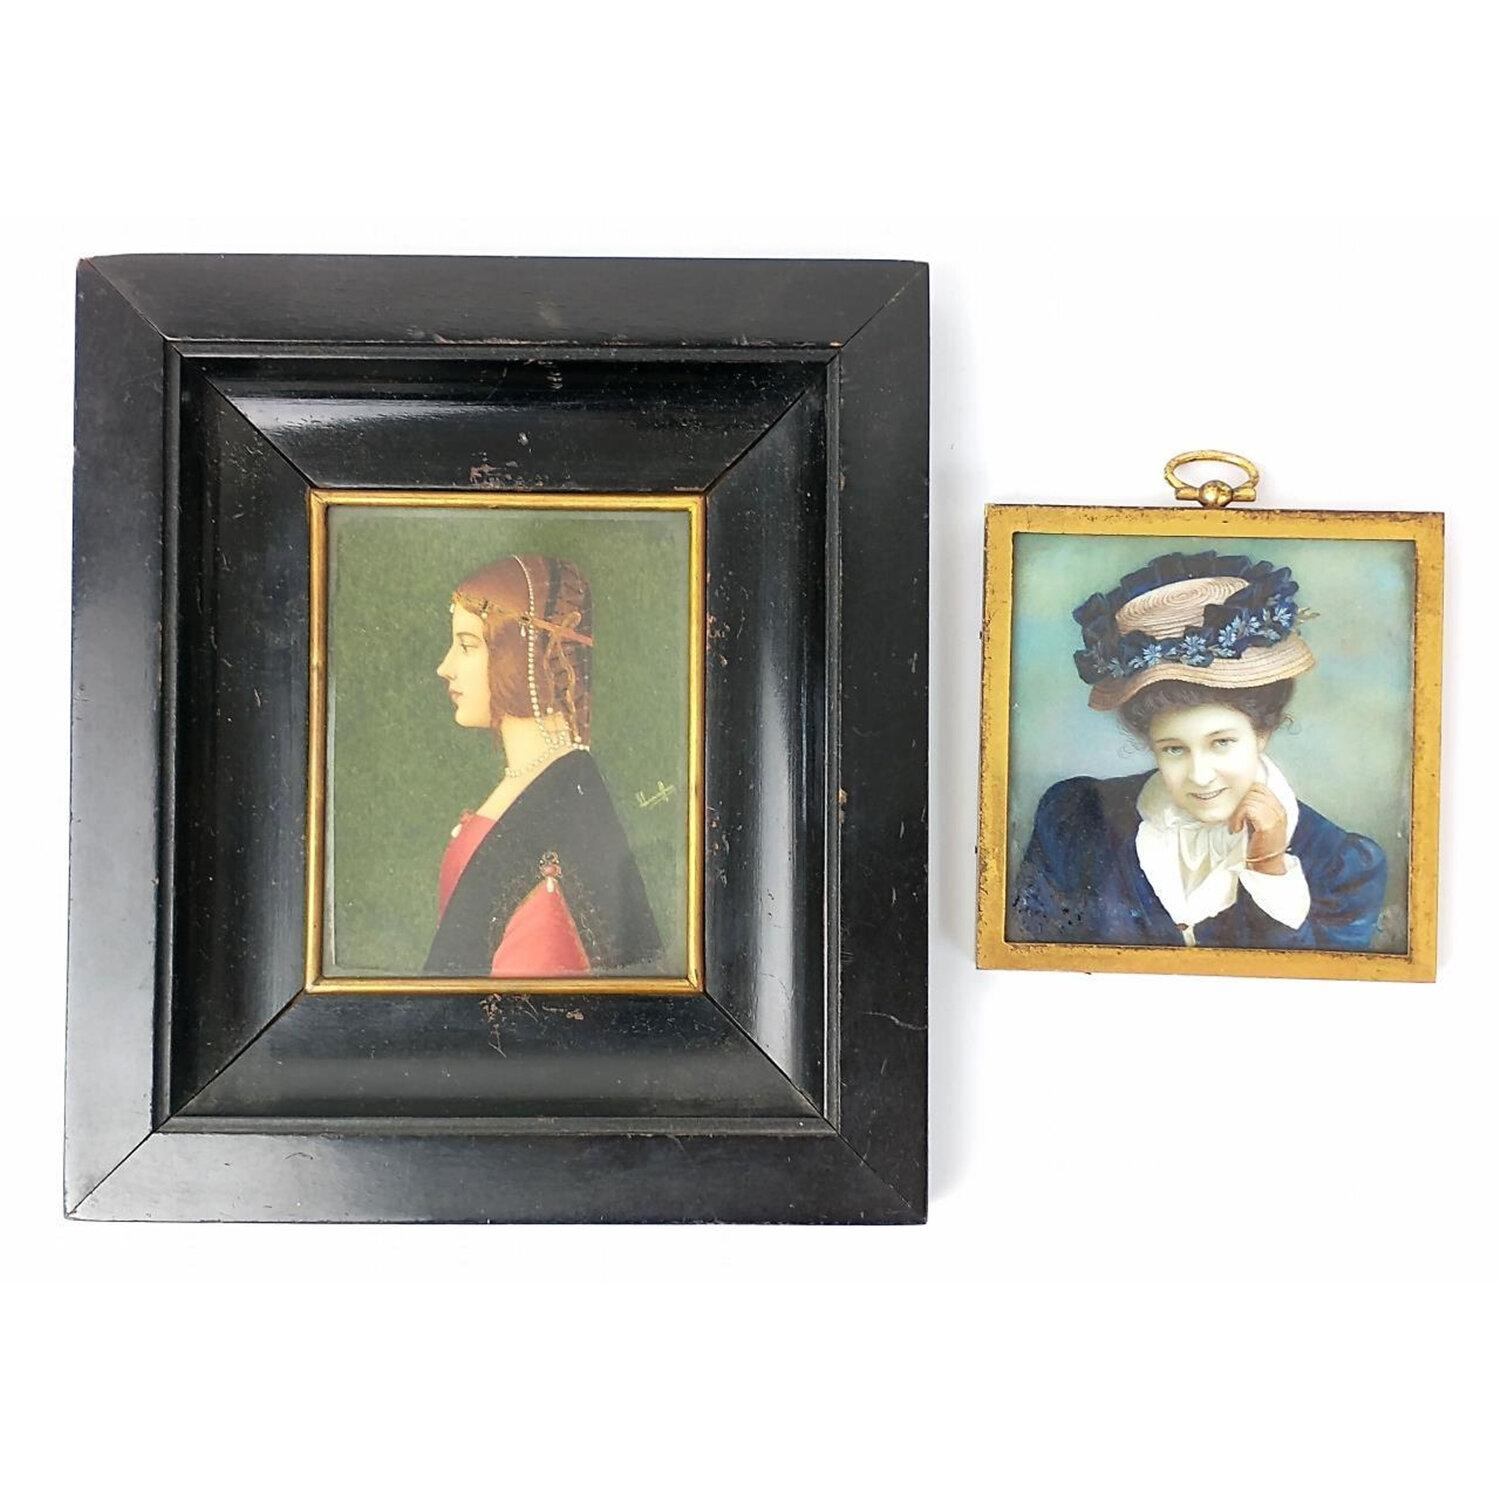 2 Antique Hand Painted, Signed Miniature Paintings